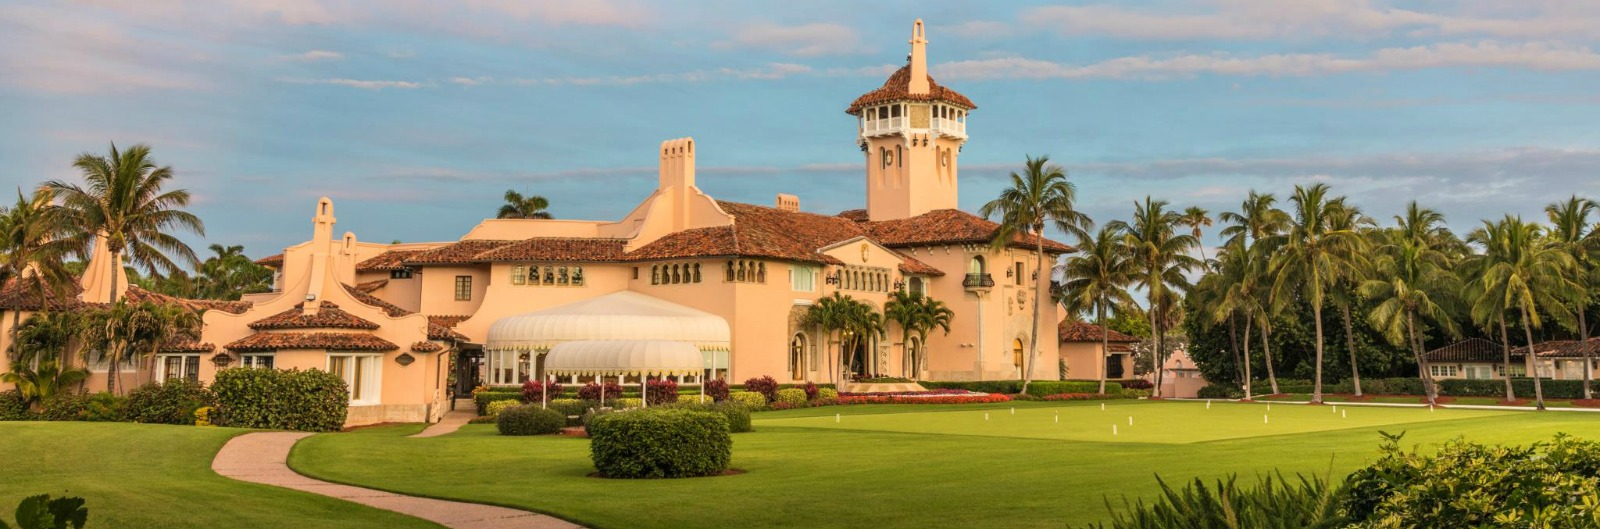 report trump s mar a lago is highly vulnerable to hacking